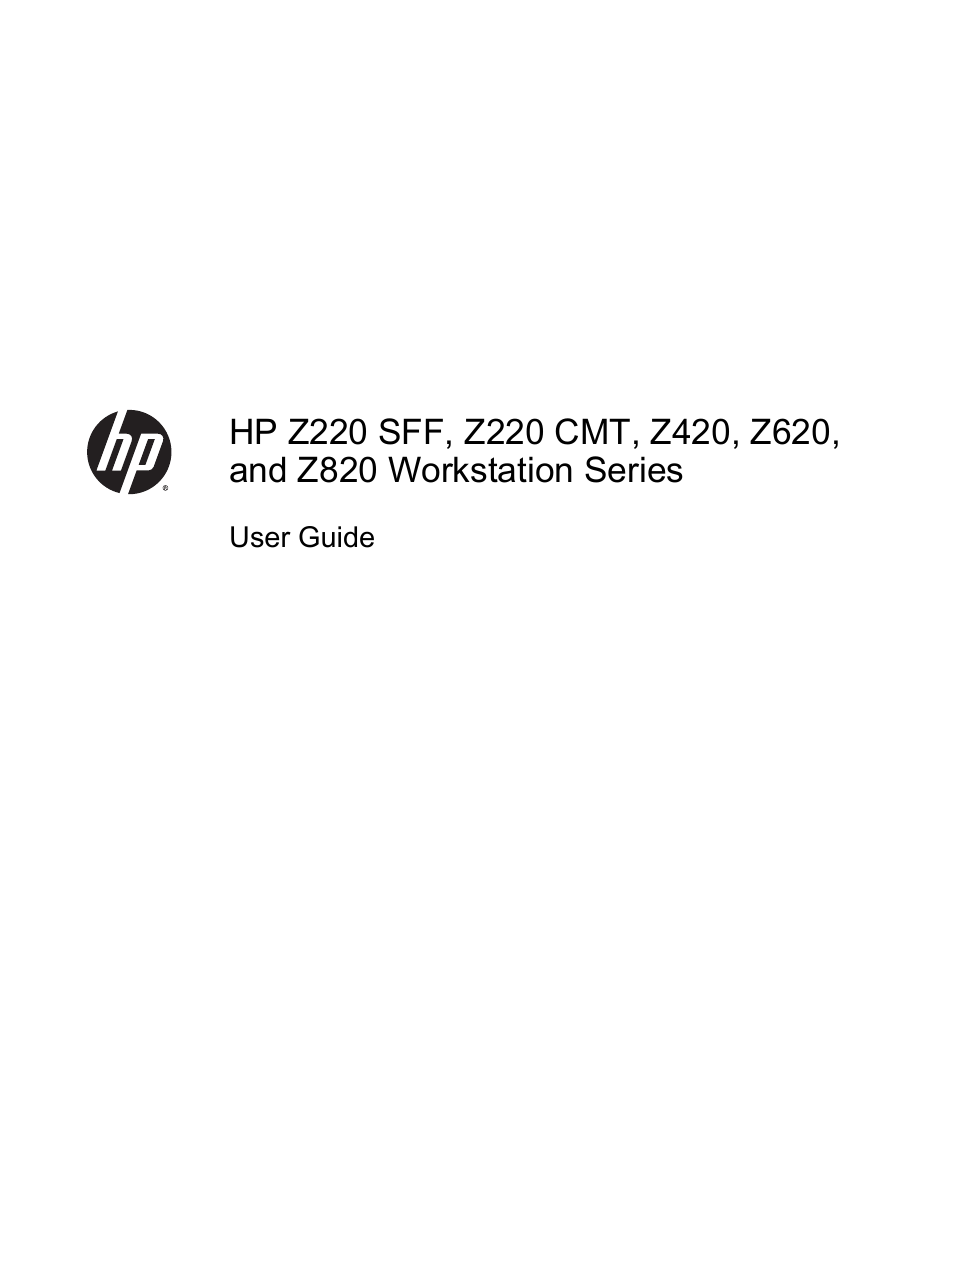 HP Z620 Workstation User Manual | 65 pages | Also for: Z420